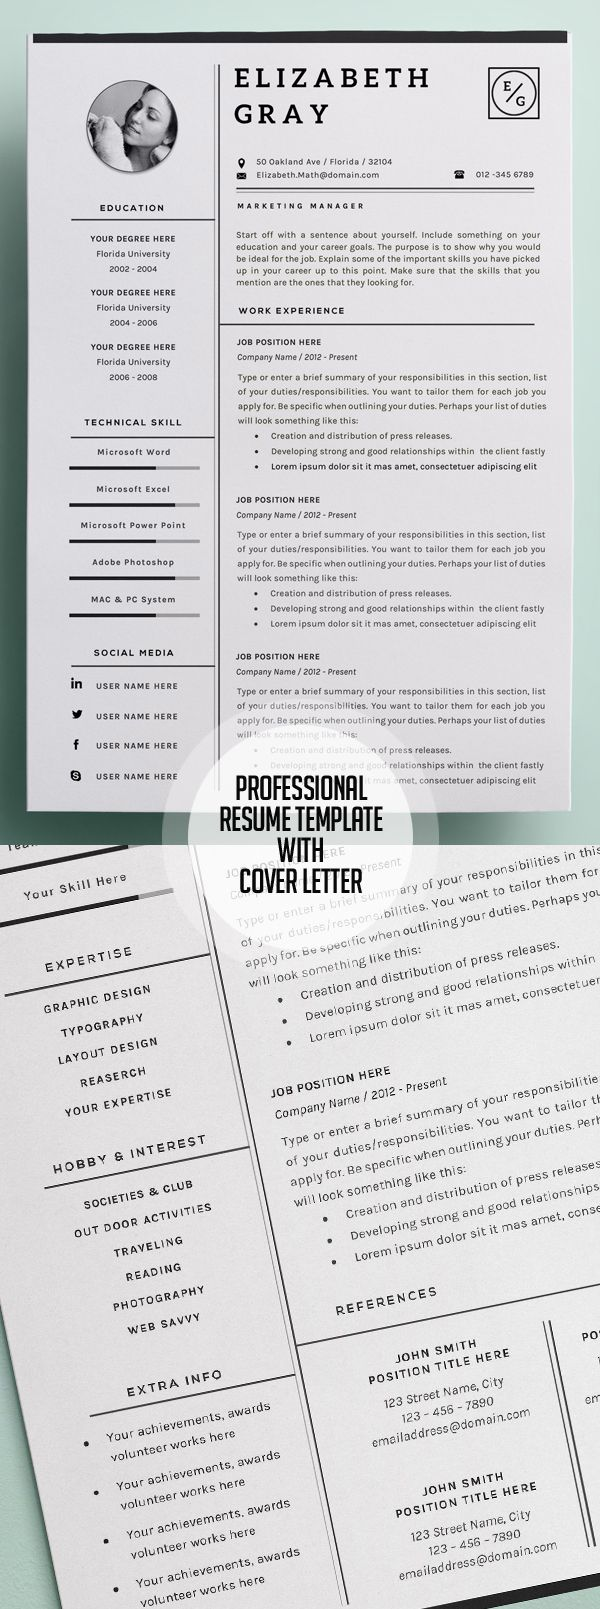 Picnictoimpeachus  Splendid  Resume Ideas On Pinterest  Resume Resume Templates And  With Likable Professional And Modern Resume Template With Page Cover Cvtemplate With Archaic Resume For It Also Past Tense On Resume In Addition Follow Up On Resume And Cleaning Services Resume As Well As What Is A Professional Resume Additionally Resume Instructions From Pinterestcom With Picnictoimpeachus  Likable  Resume Ideas On Pinterest  Resume Resume Templates And  With Archaic Professional And Modern Resume Template With Page Cover Cvtemplate And Splendid Resume For It Also Past Tense On Resume In Addition Follow Up On Resume From Pinterestcom